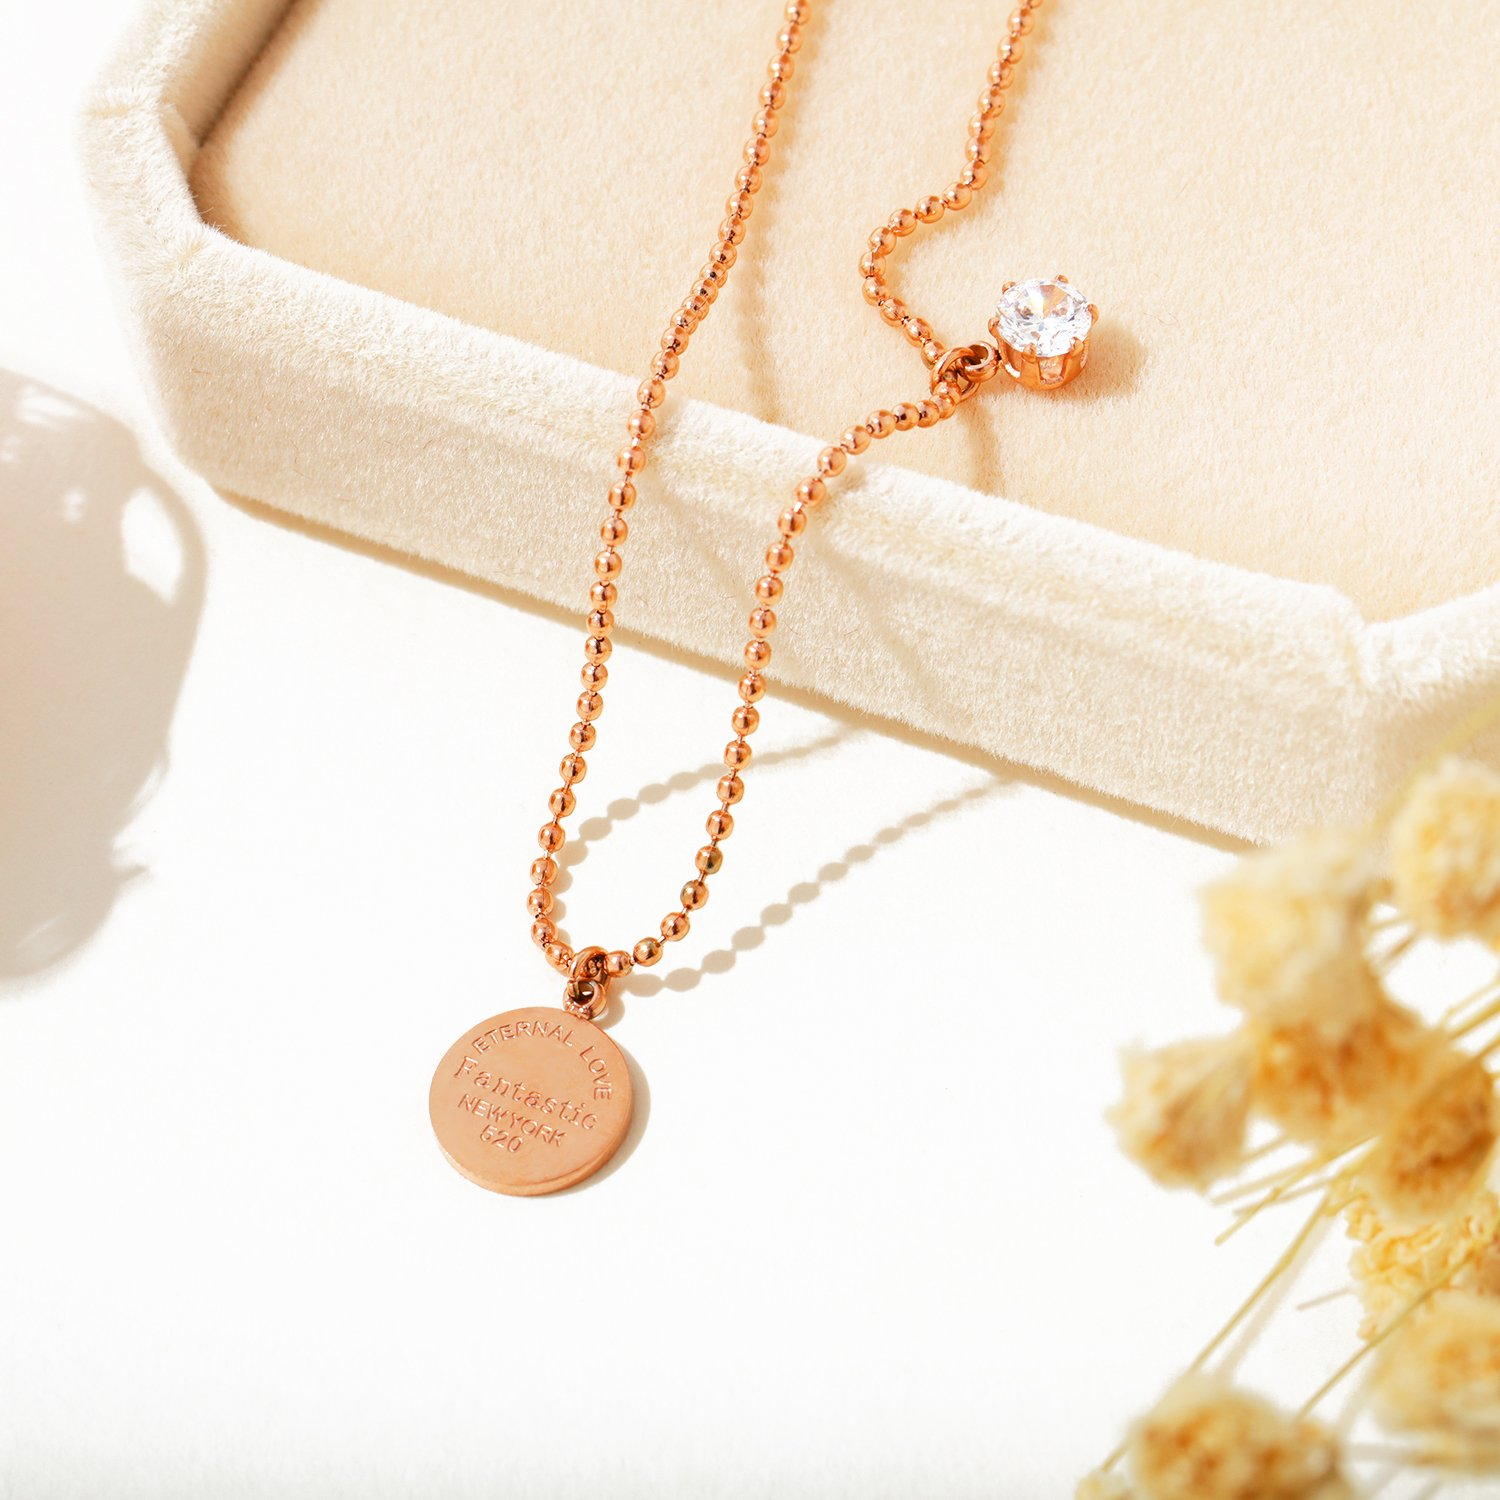 OPK Stainless Steel Rose Gold Women Anklet,Enternal Love Fantastic New York Link Chain Beach Foot Jewelry by OPK (Image #4)